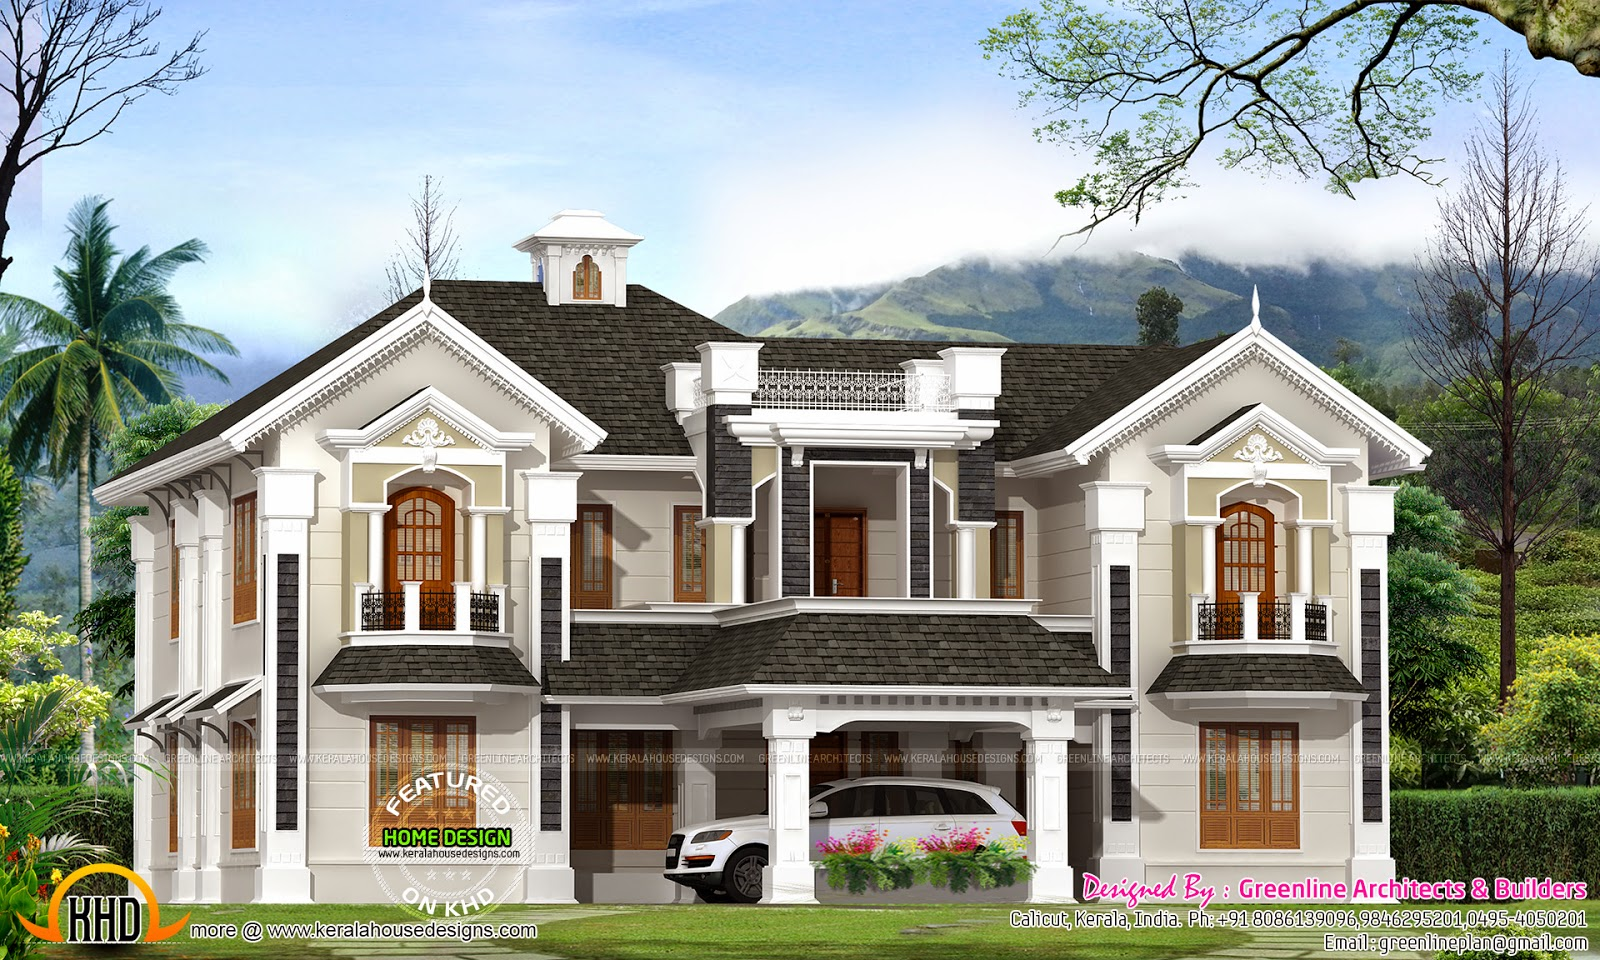 Colonial style house in kerala kerala home design and for House design kerala style free